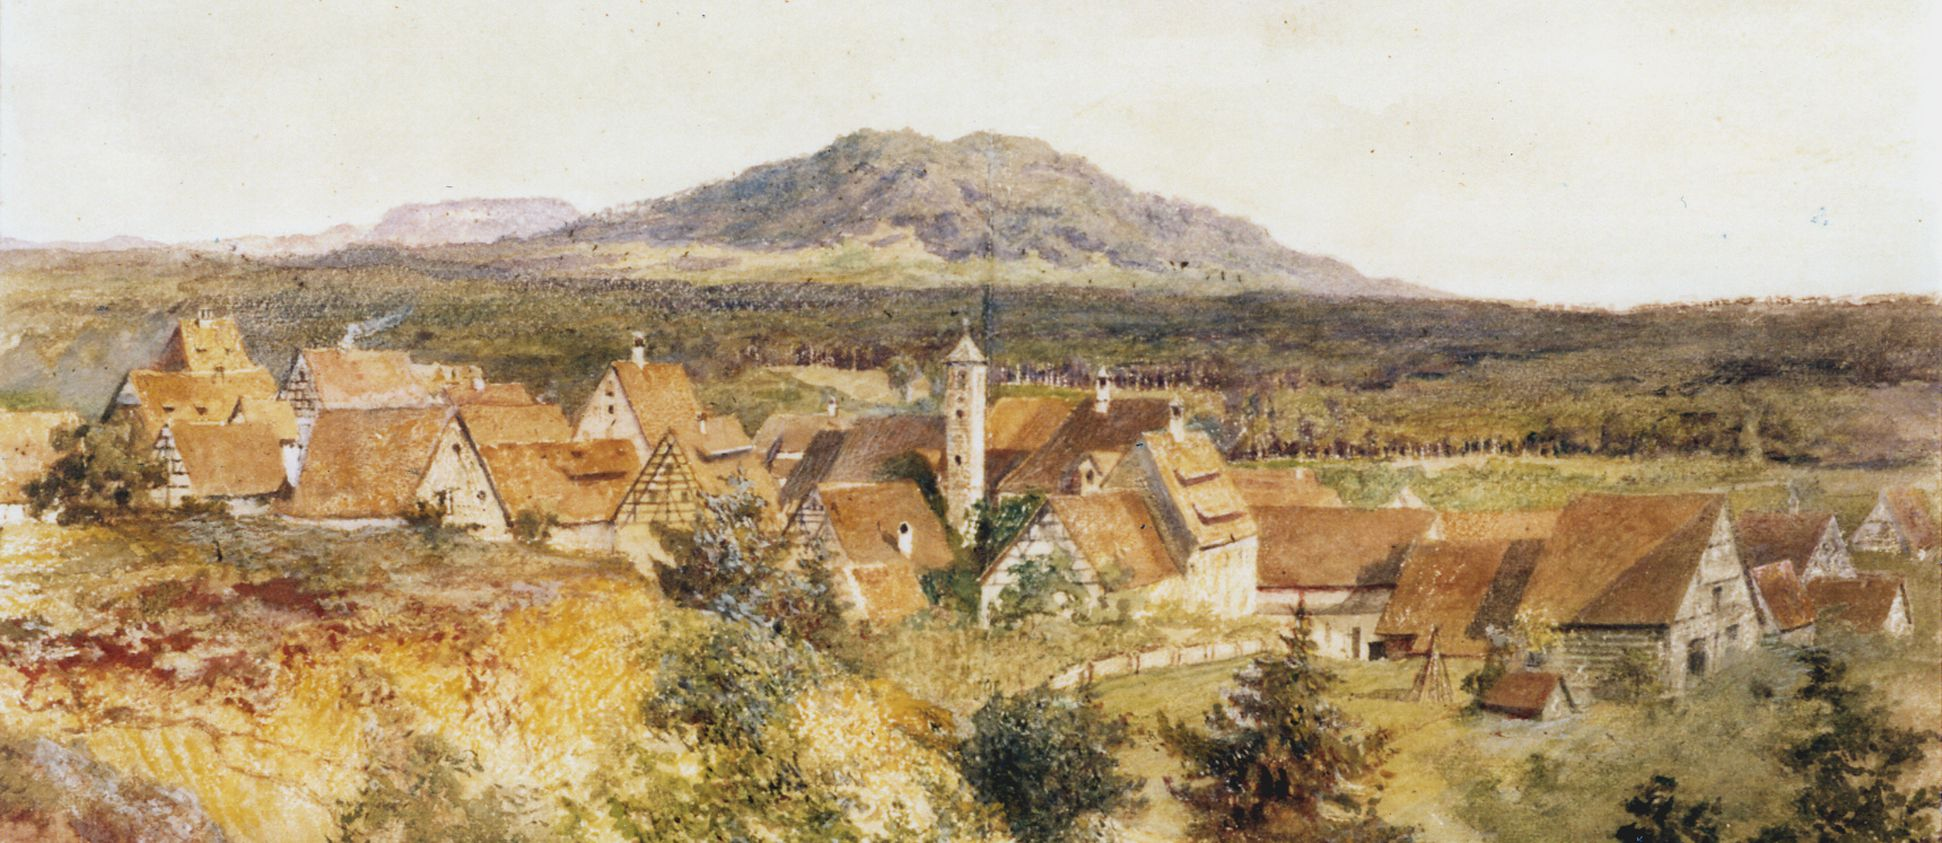 Rückersdorf with Moritz Hill (Moritzberg) Upper half of the picture